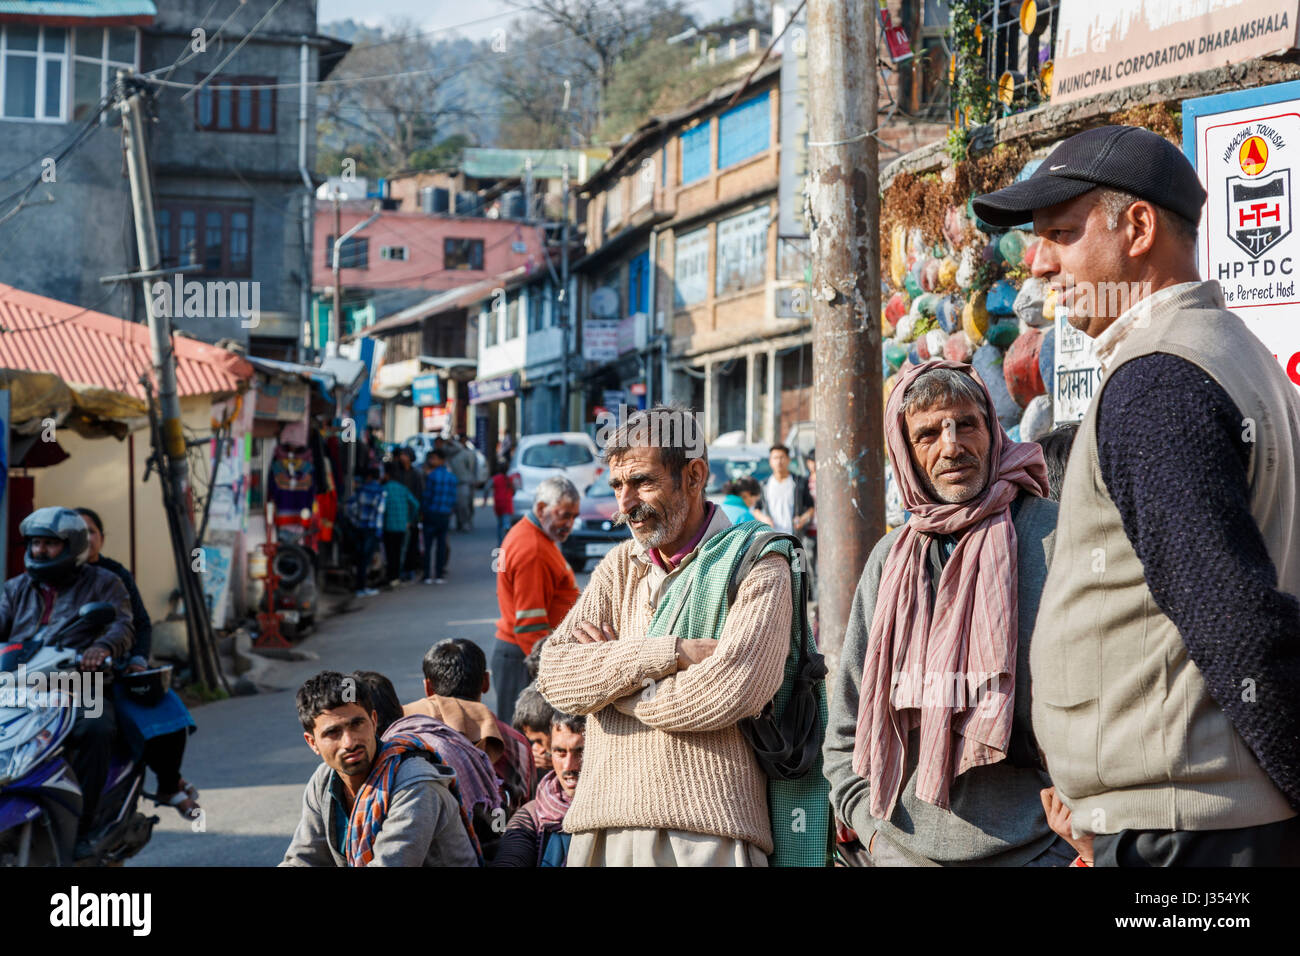 Indian lifestyle: local men standing around waiting patiently in a crowded street in McLeodGanj, Dharamshala, Himachal - Stock Image